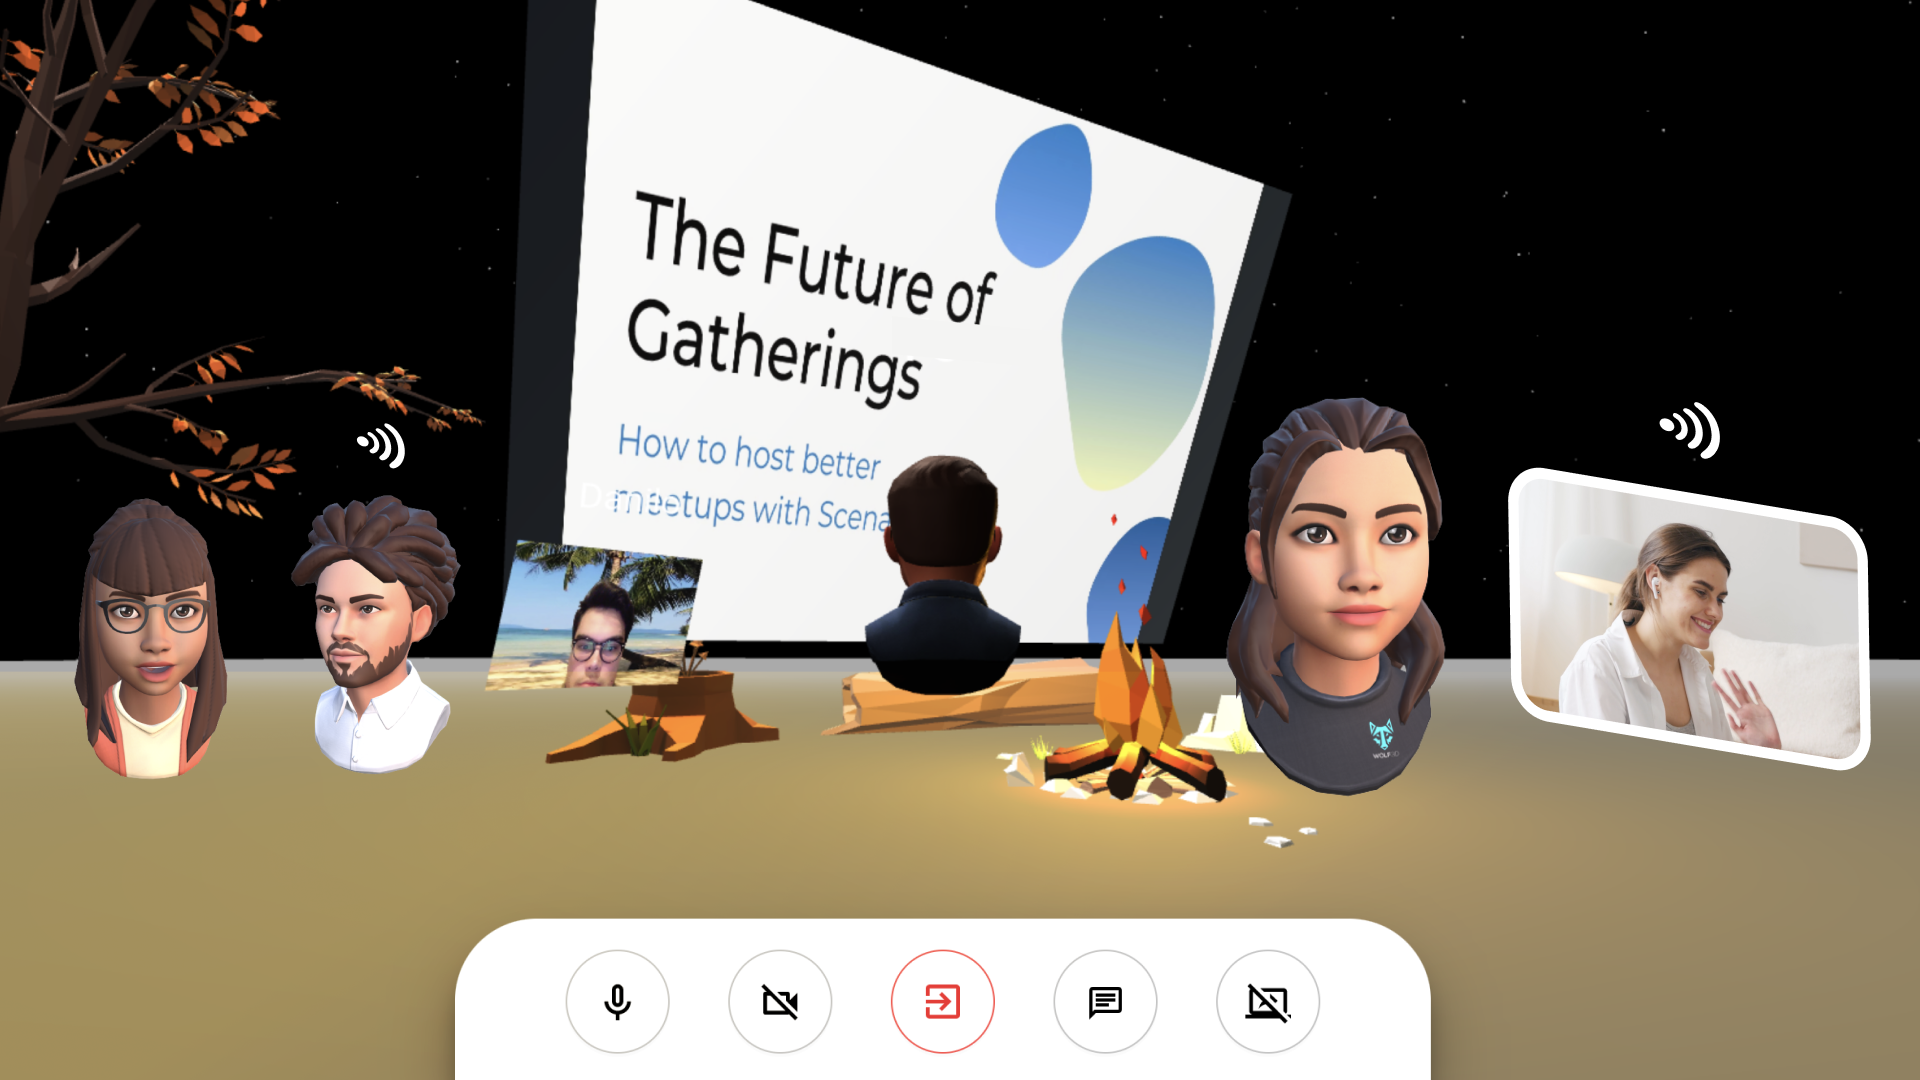 A preview of people gathering in Scena 360 and discussing the future of virtual gatherings.